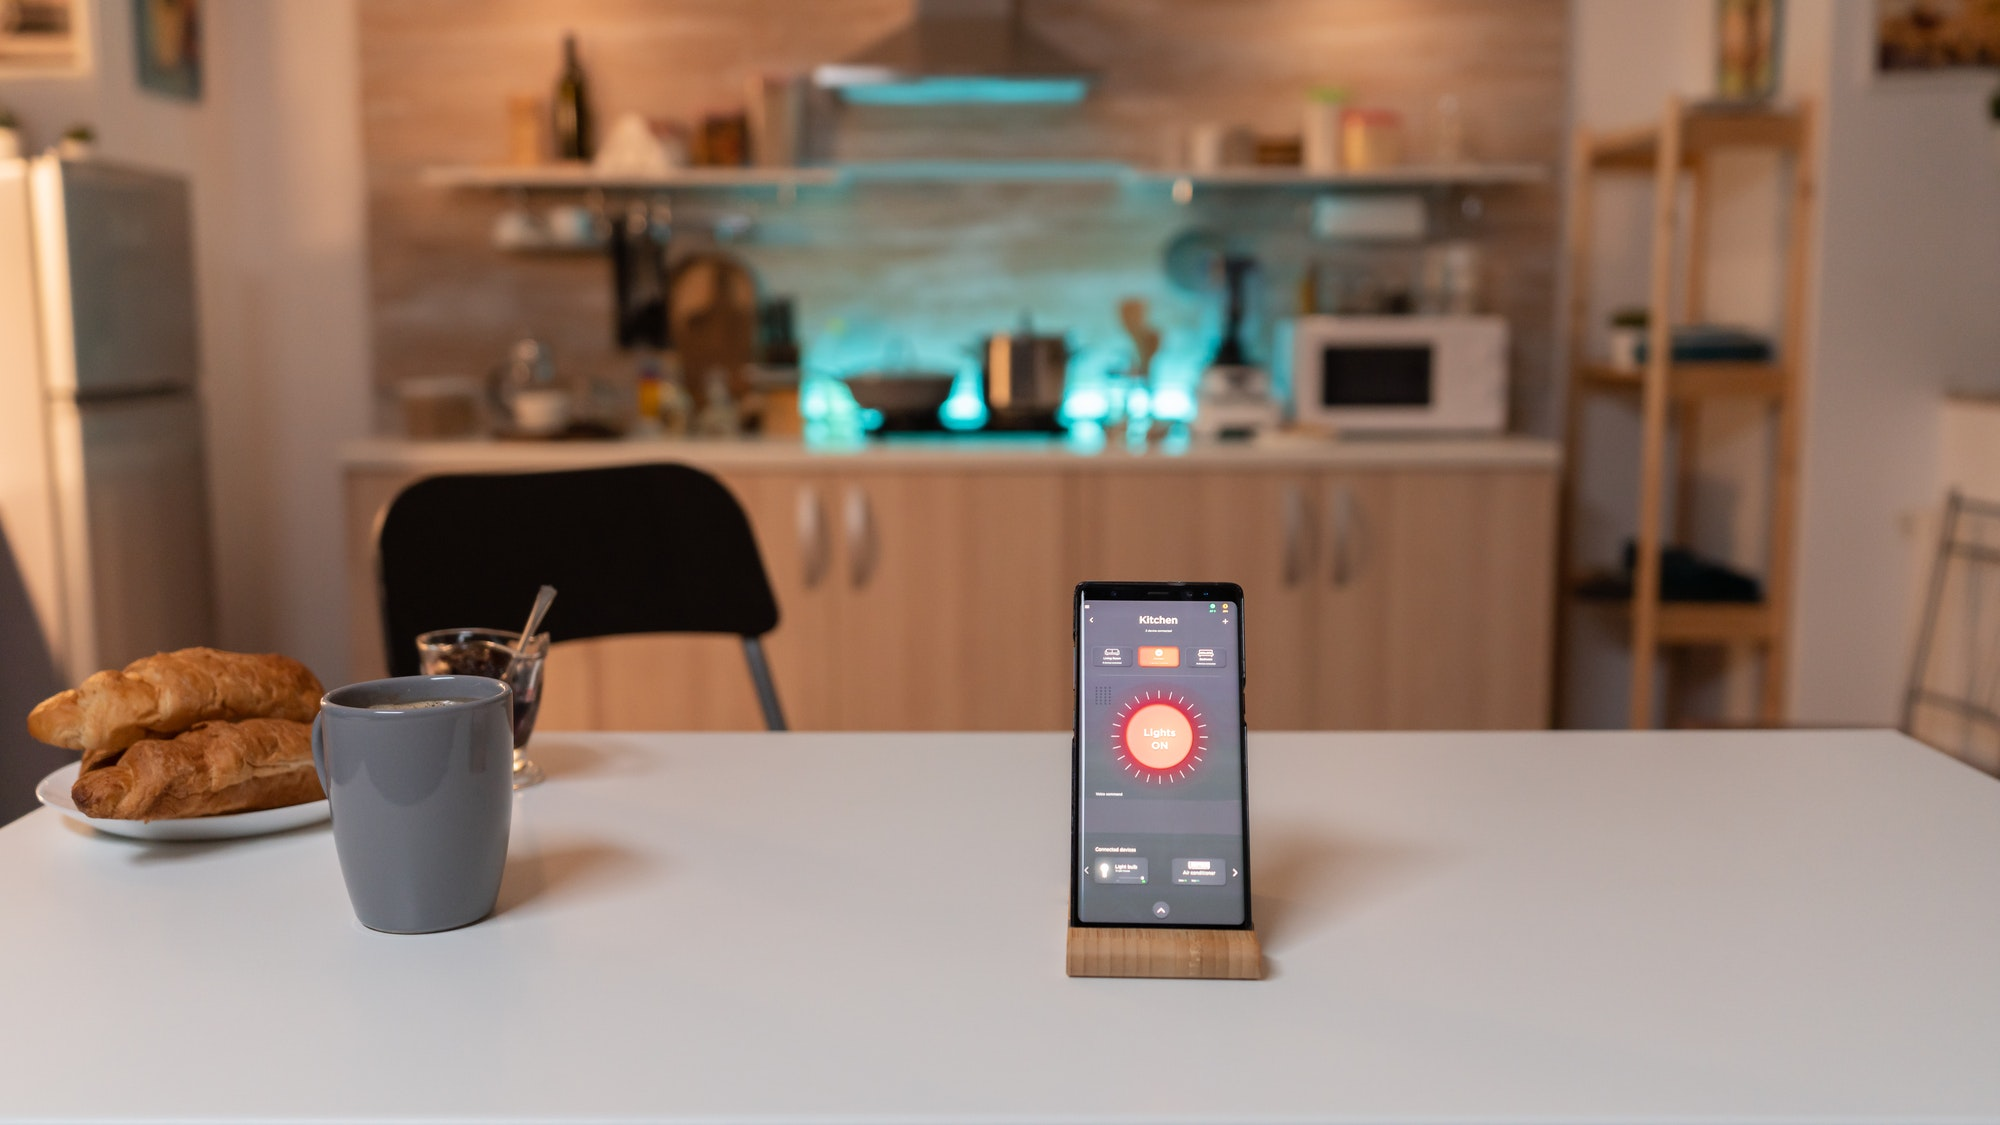 Smartphone with active smart home application